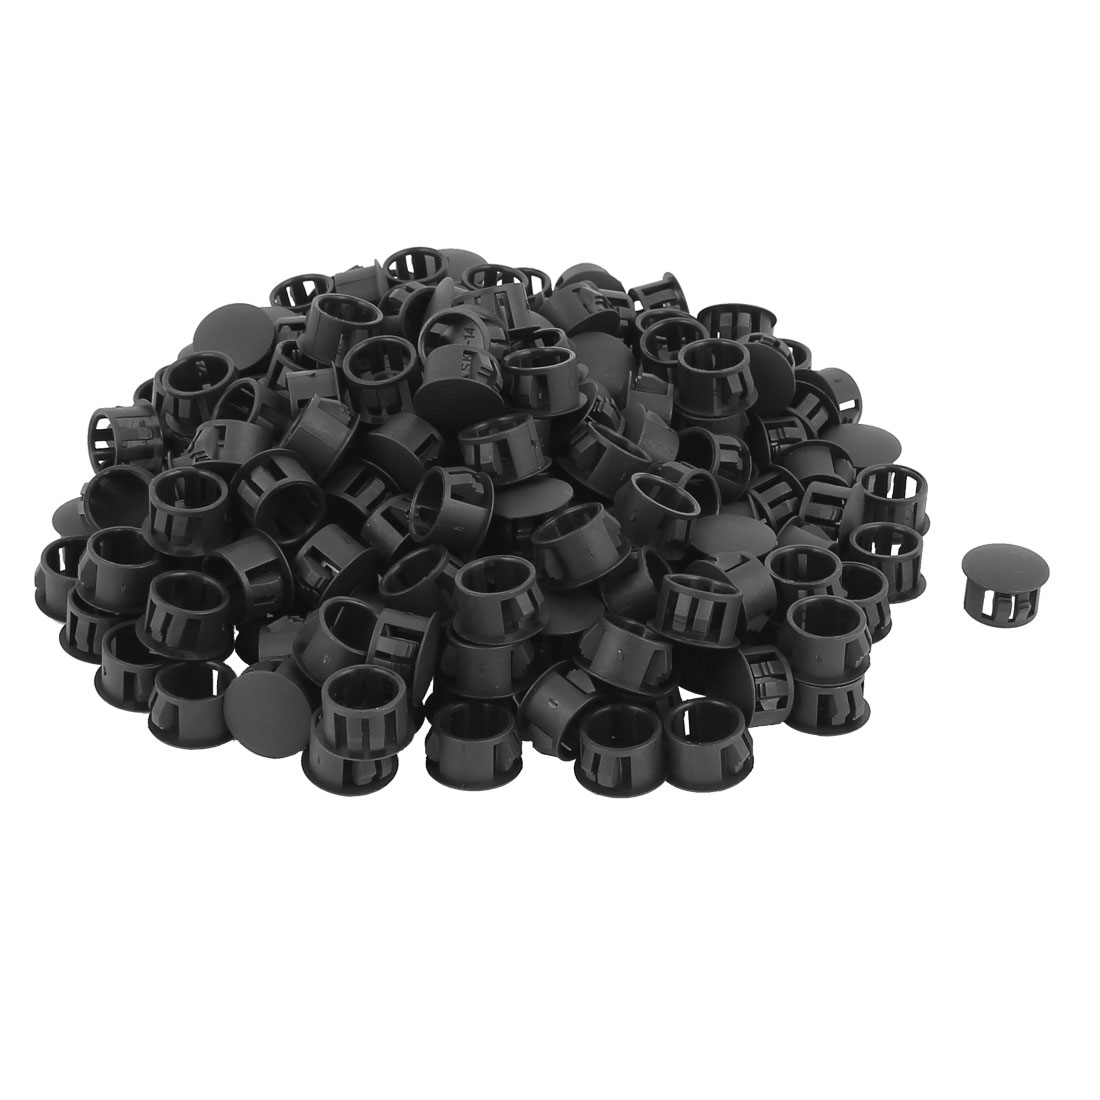 SKT-14 Plastic 14mm Dia Snap in Type Locking Hole Connectors Button Cover 200pcs